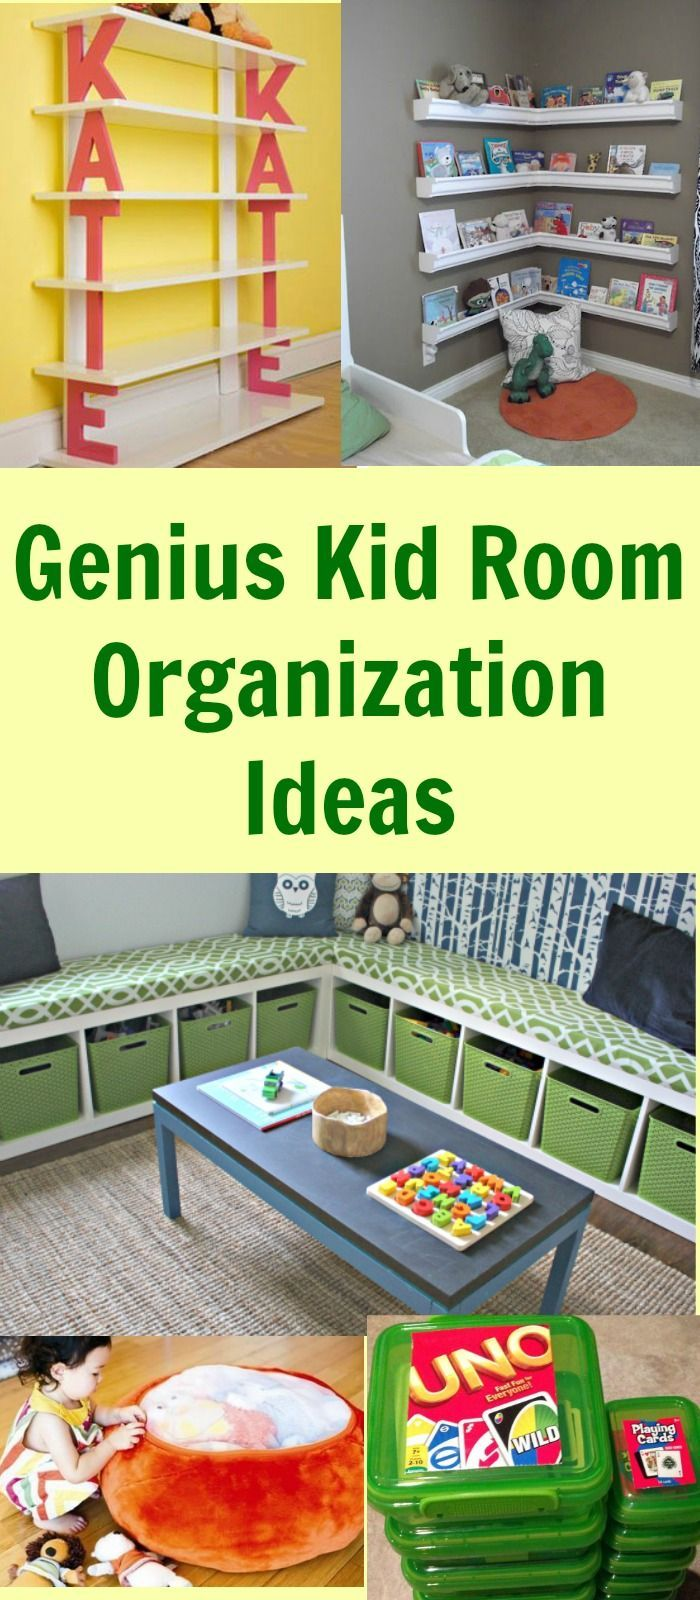 Genius Kid Room Organization Ideas | *Homespiration | Pinterest ...